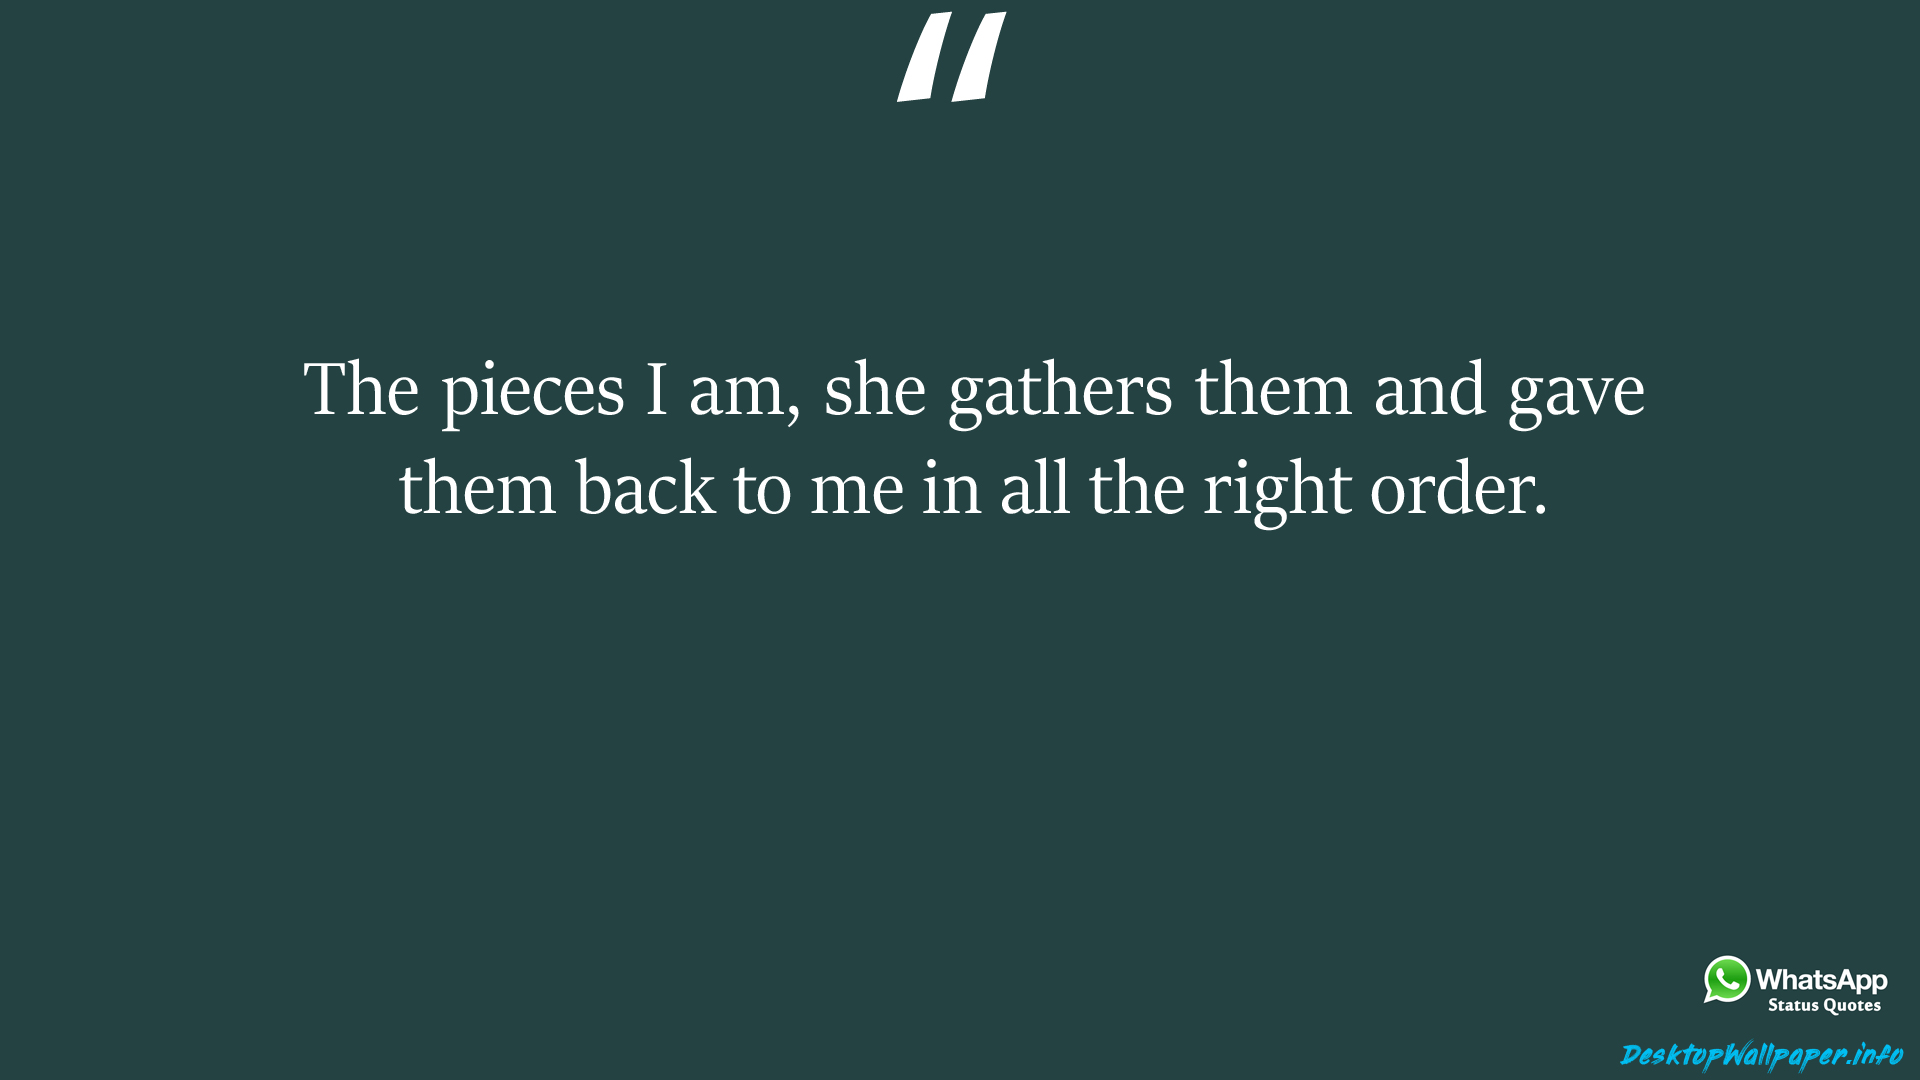 The pieces I am she gathers them and gave them back